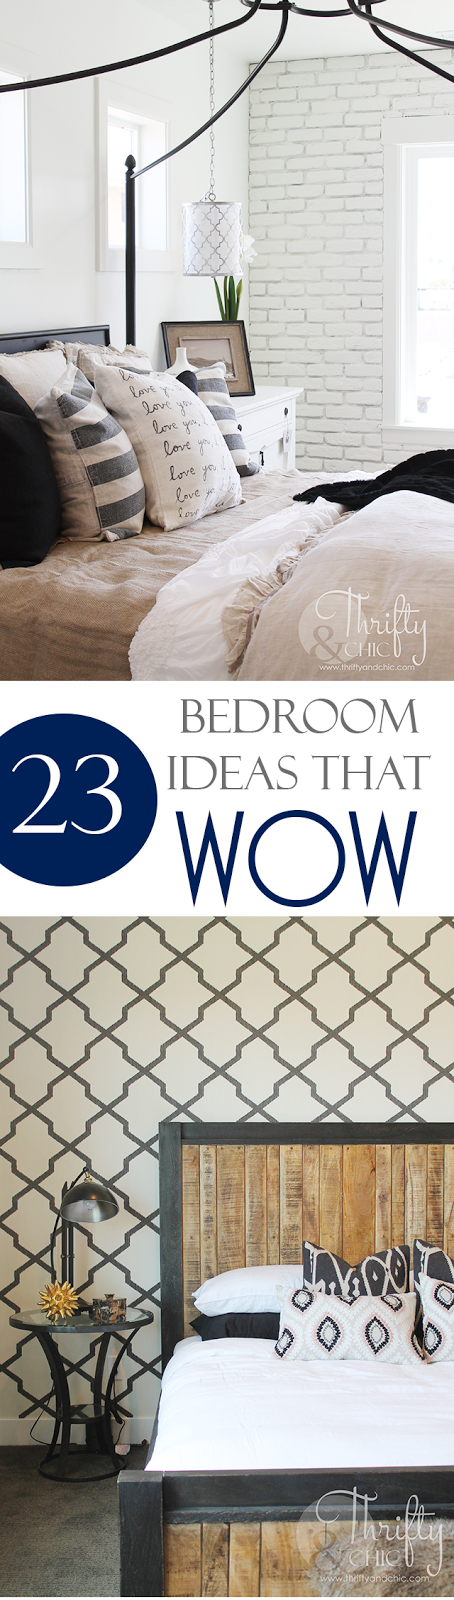 Thrifty and Chic   DIY Projects and Home Decor 23 amazing bedroom wall and ceiling ideas worth stealing  Bedroom decor and decorating  ideas